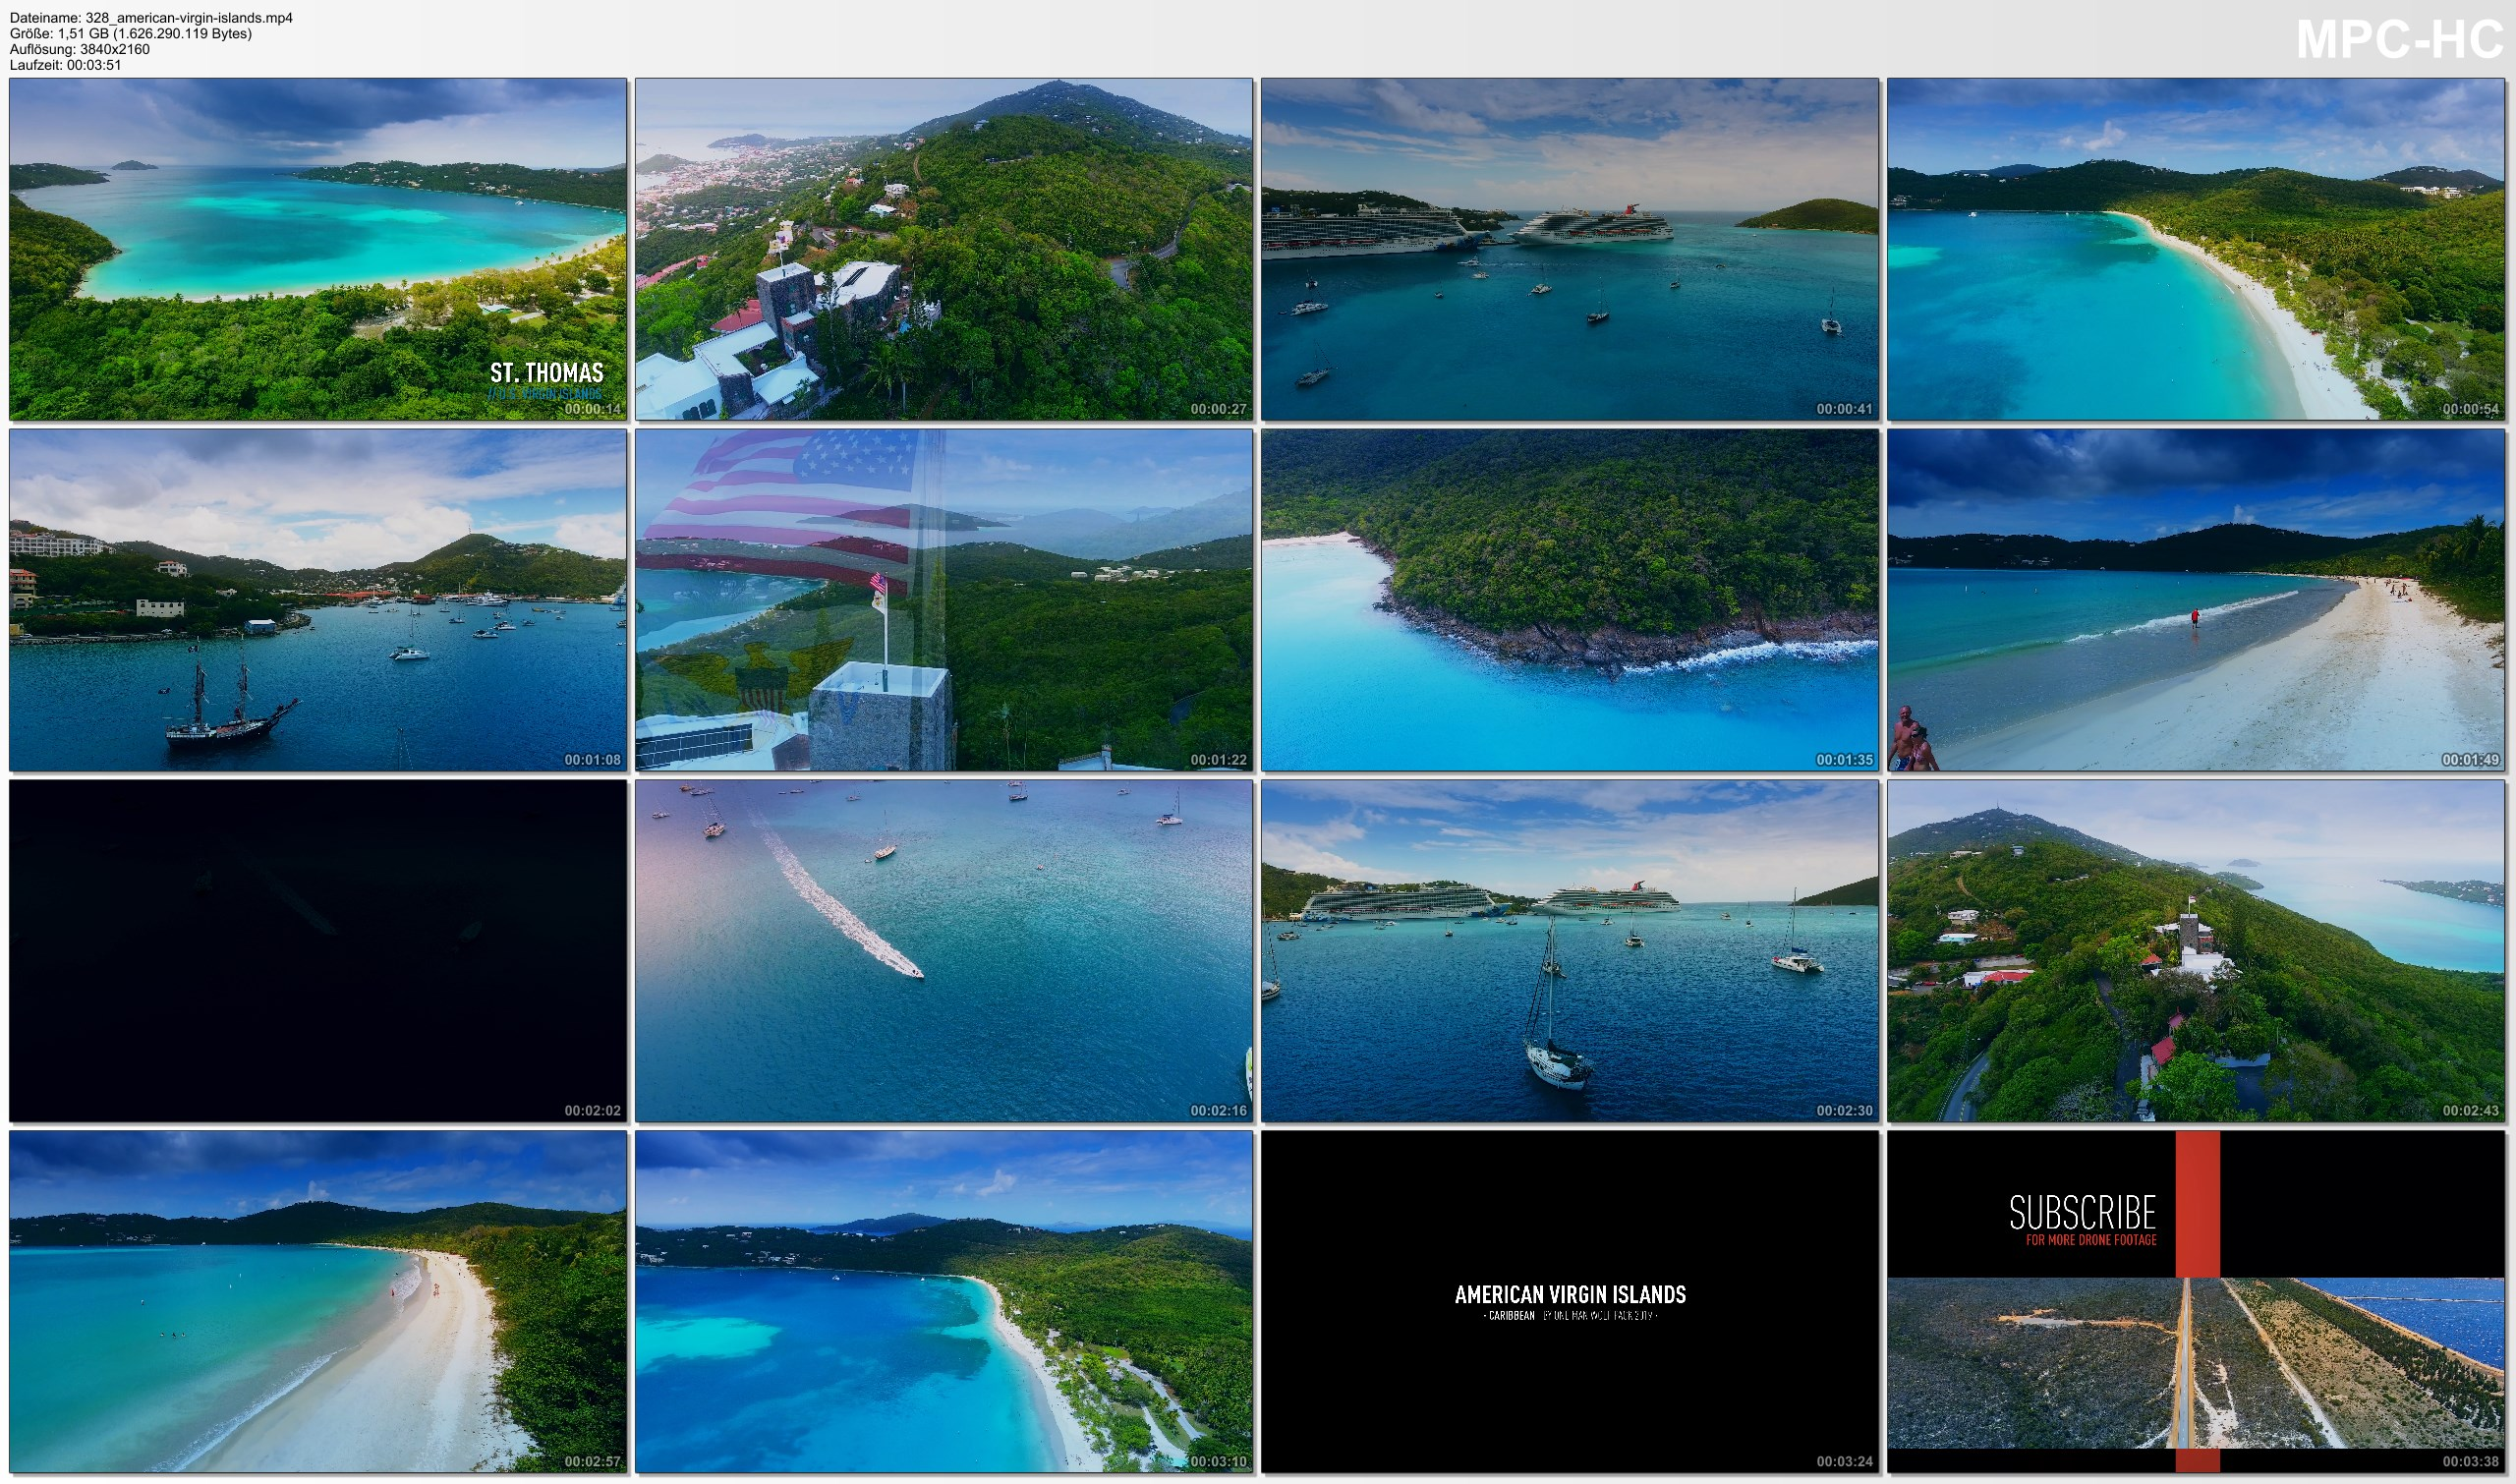 Drone Pictures from Video 【4K】Drone Footage | U.S. Virgin Islands - Caribbeans Findest USVI 2019 | Cinematic Aerial St. Thomas